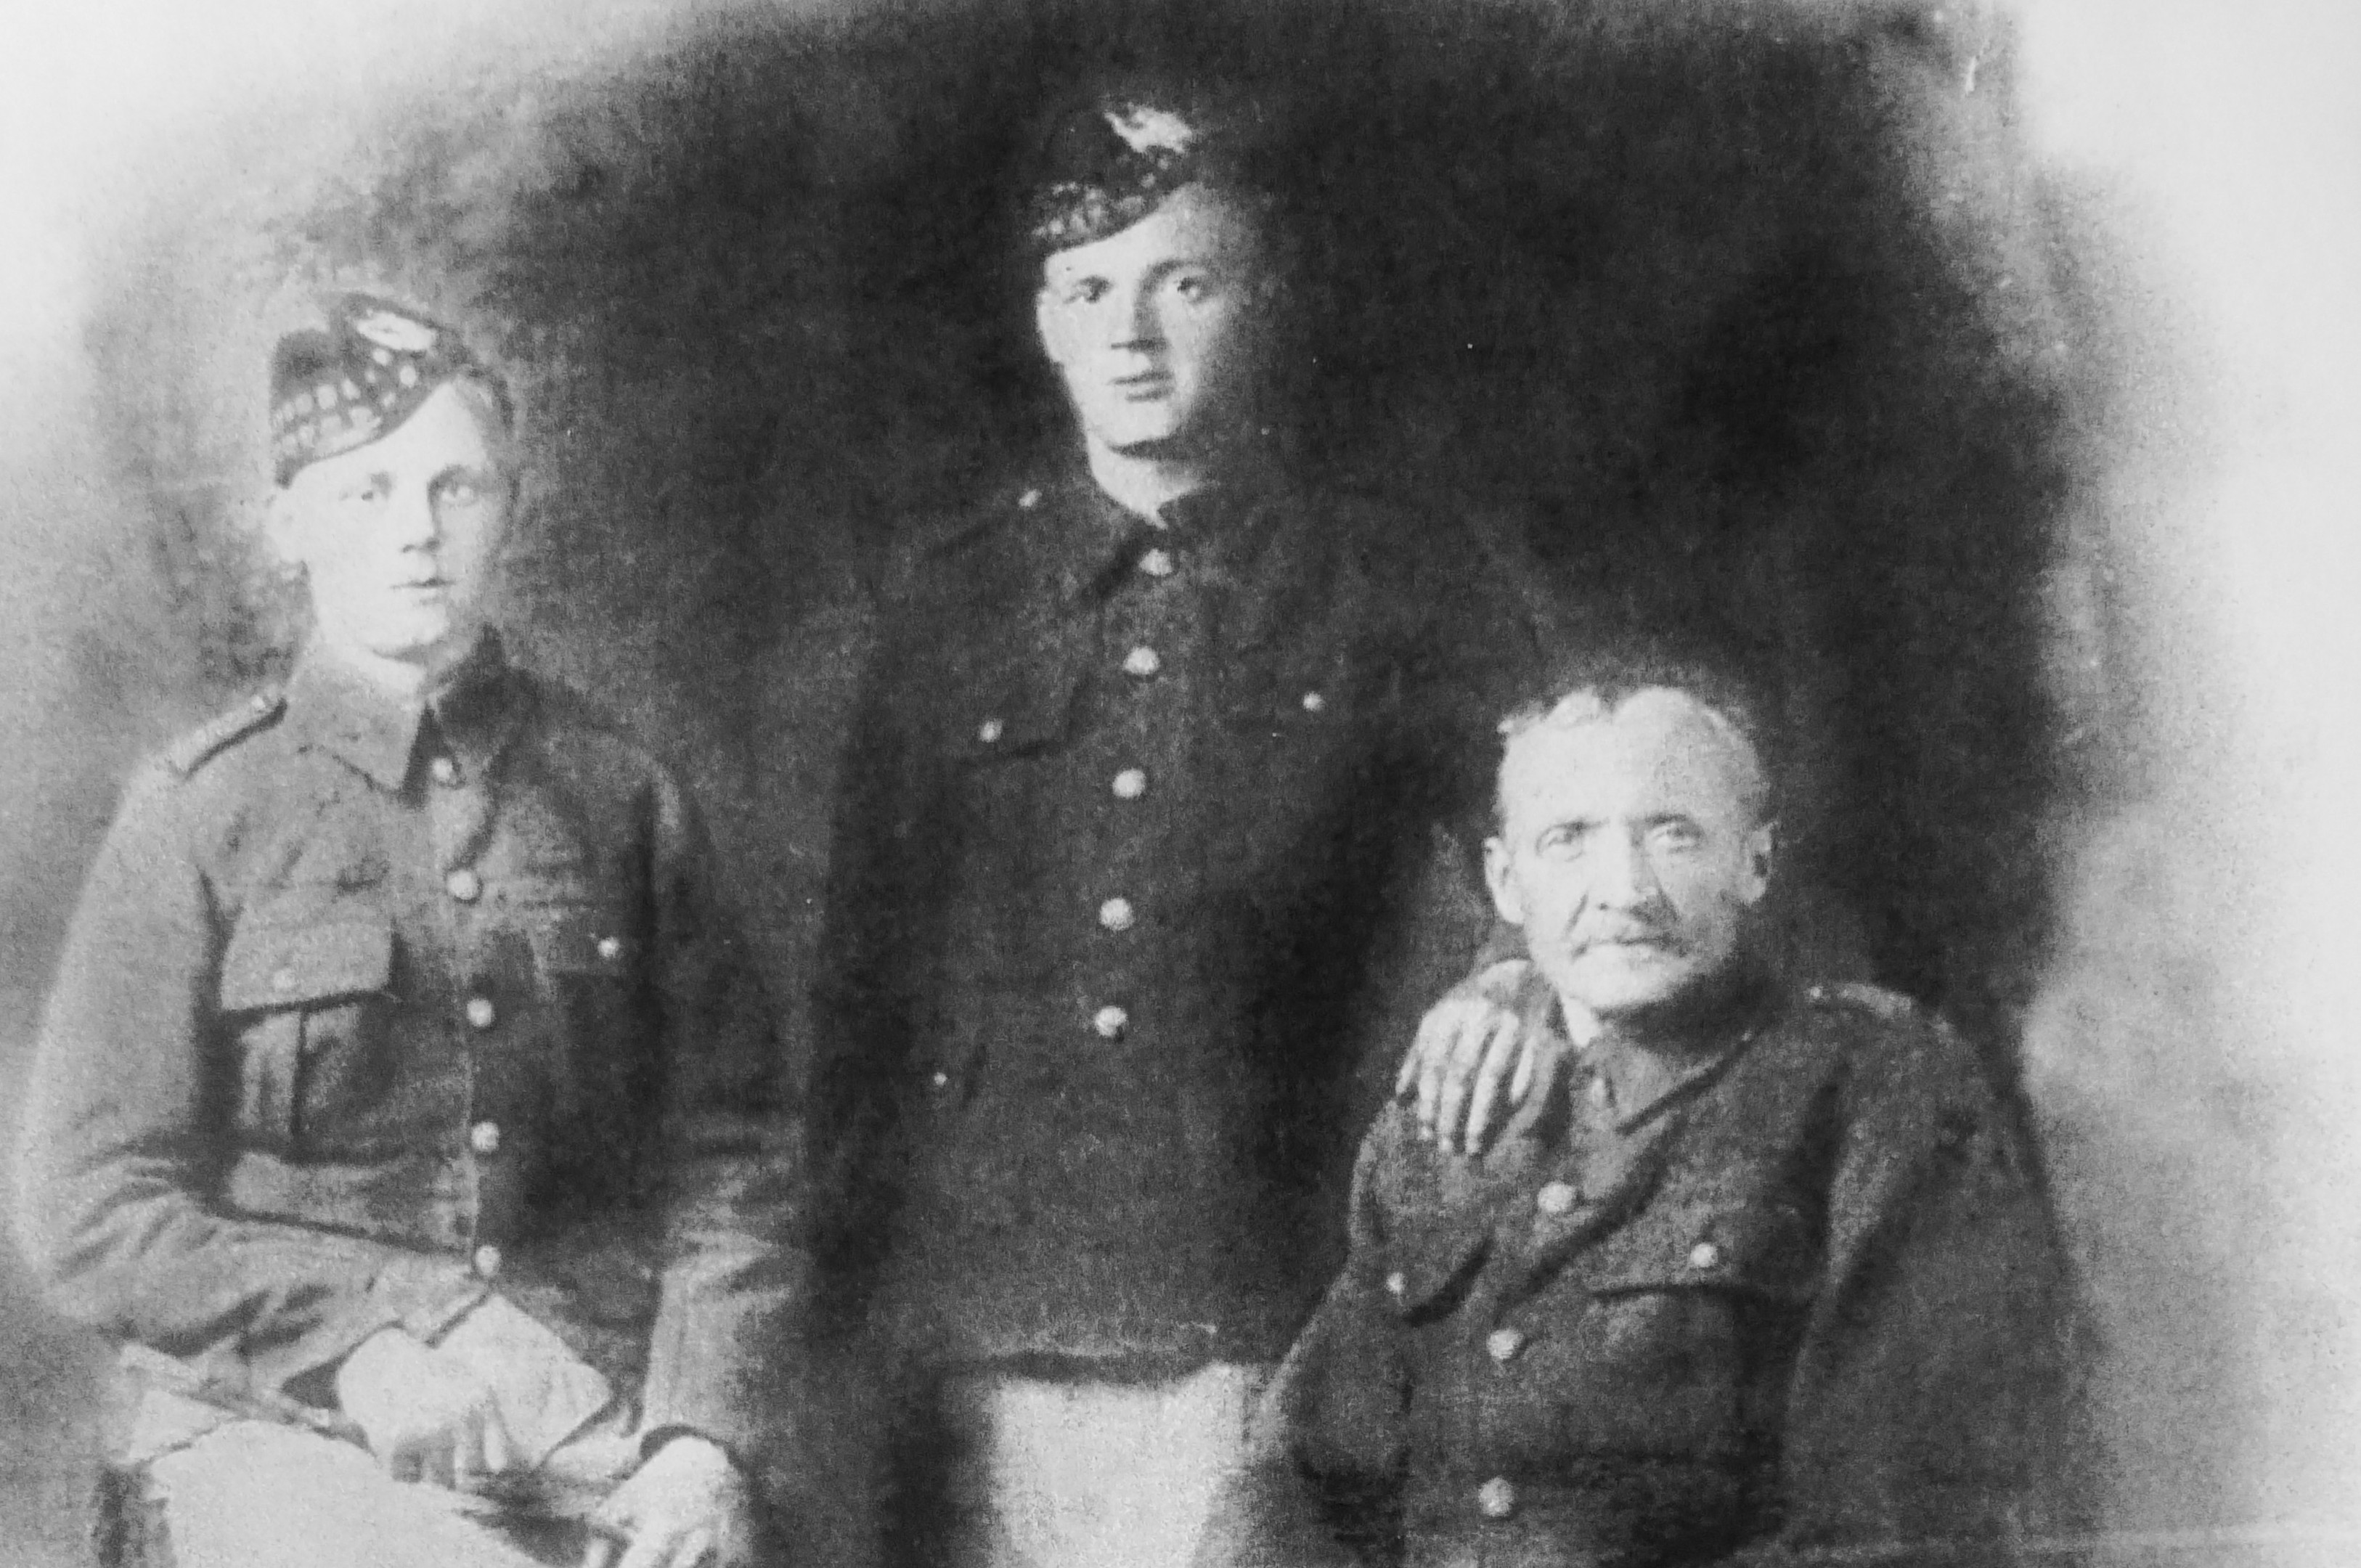 From left: James and John Tocher with their father Peter